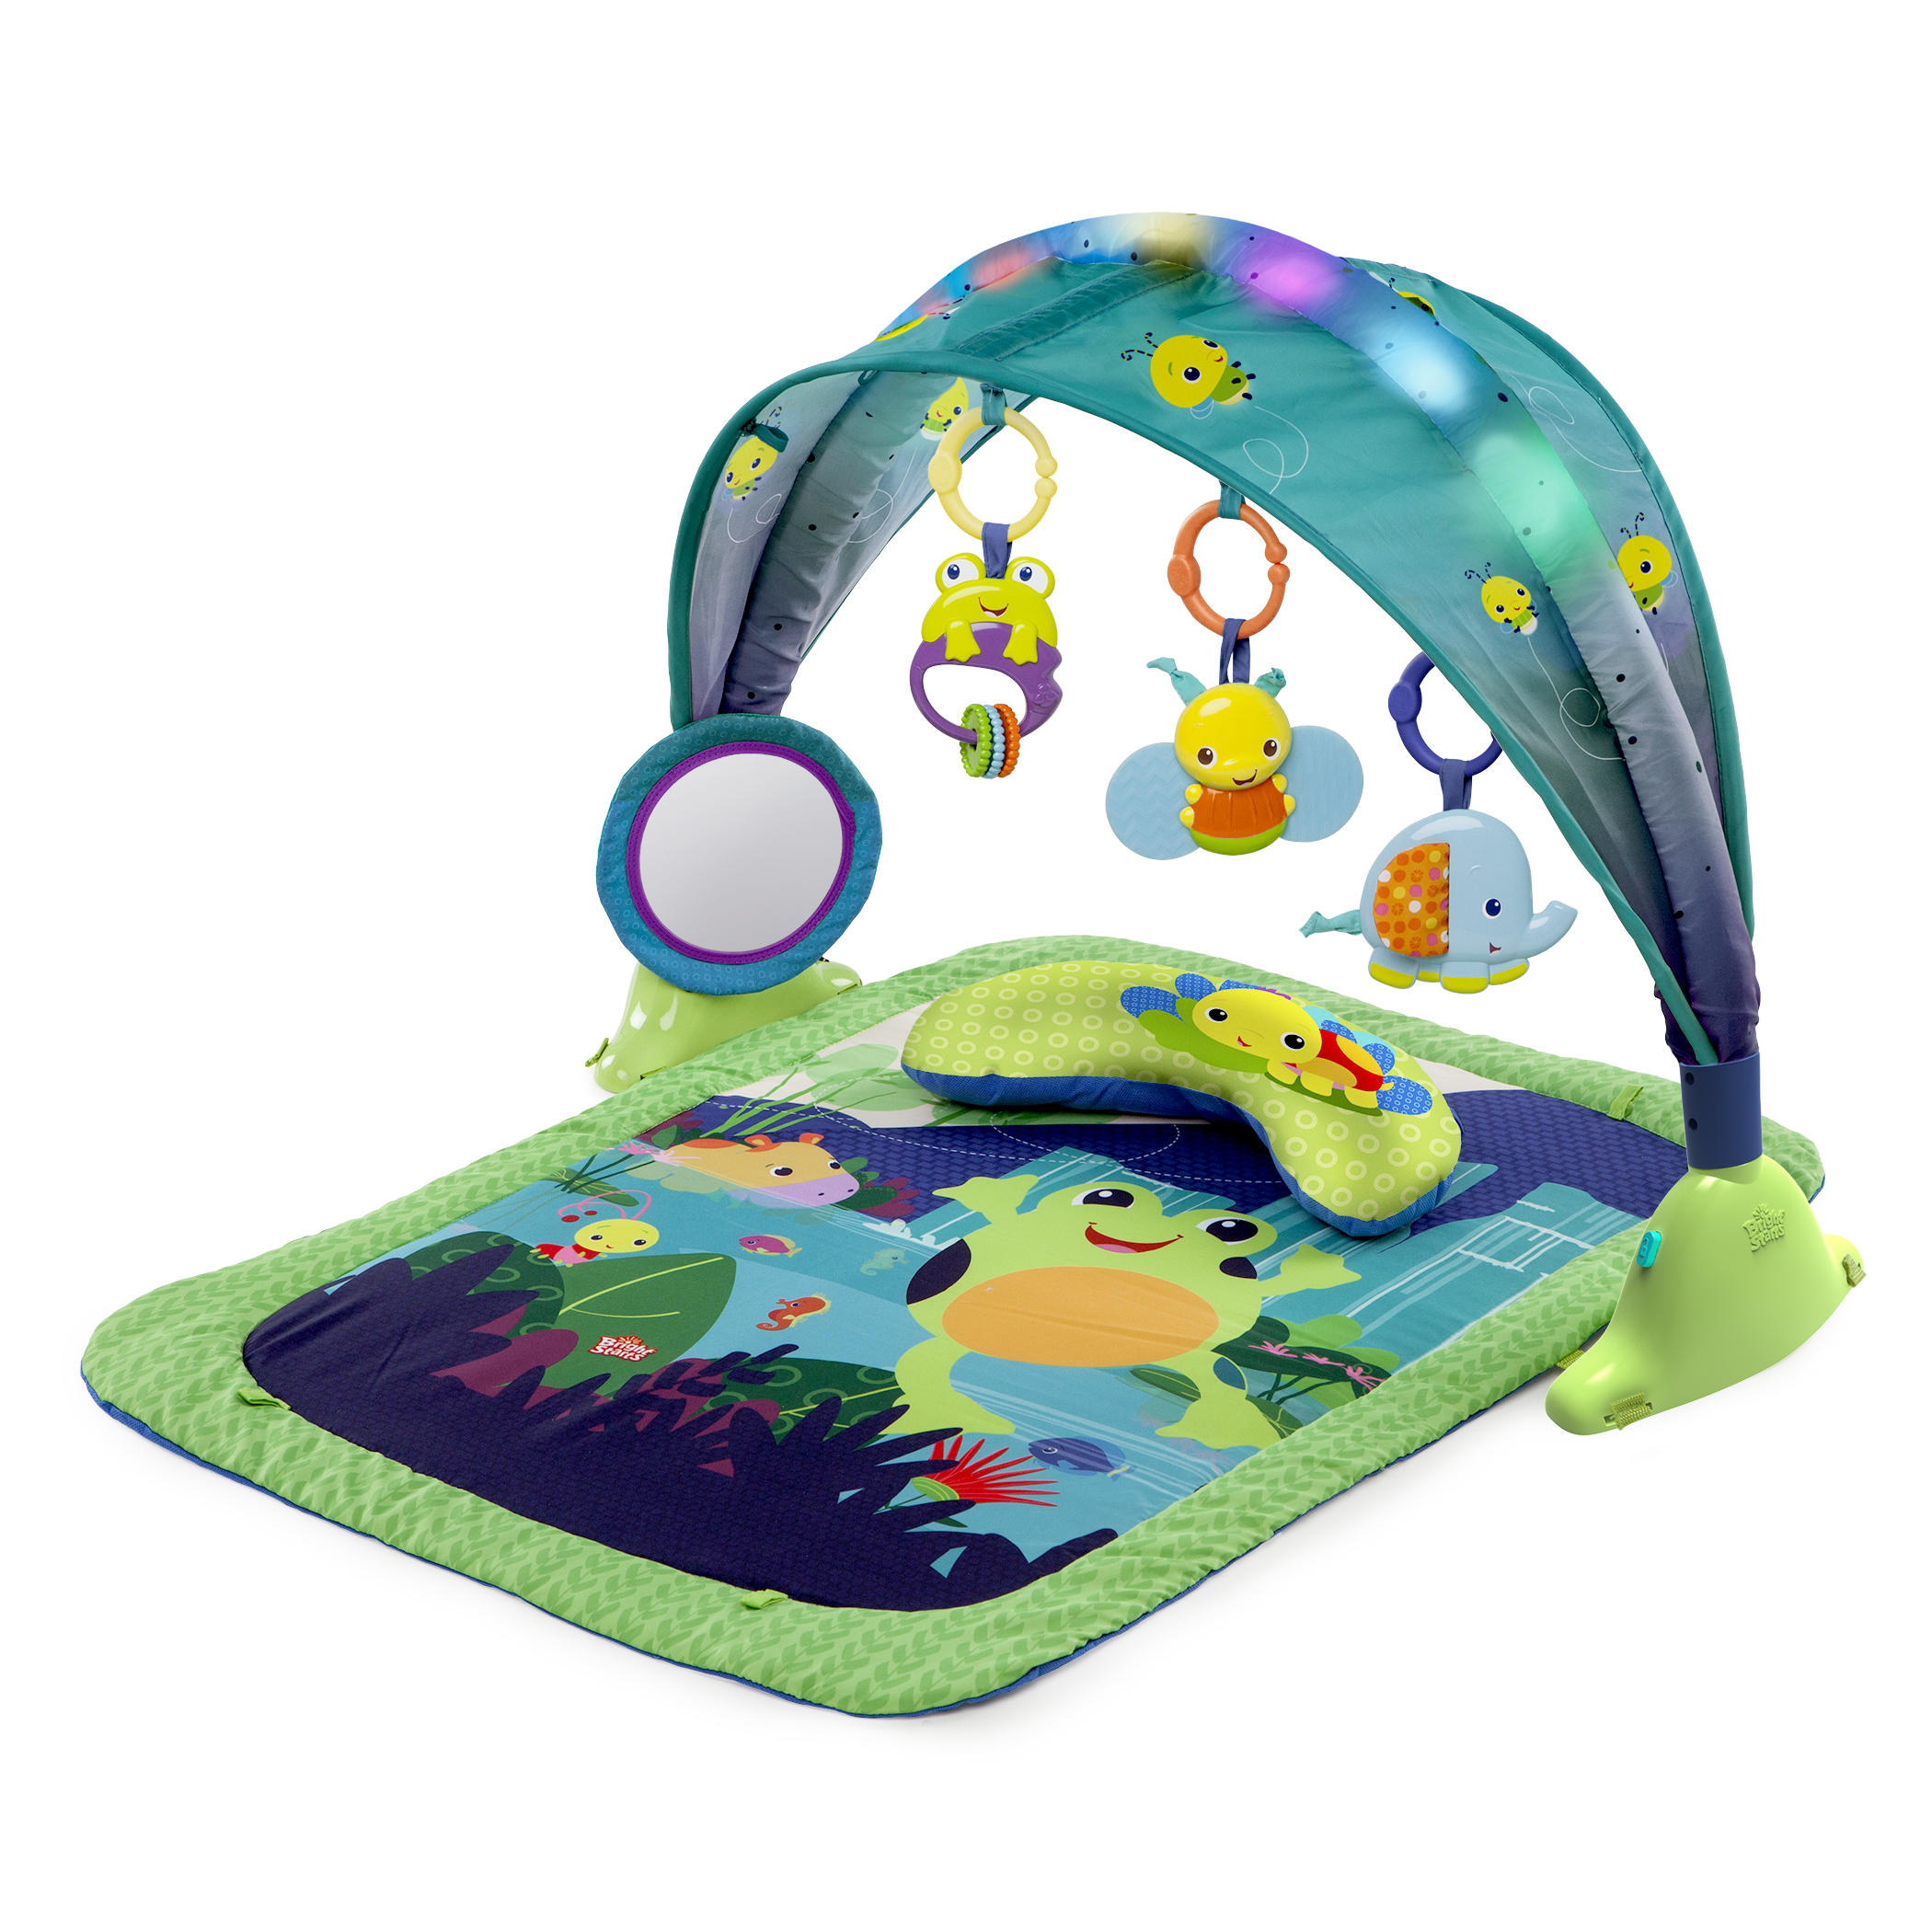 Light Up Lagoon™ Activity Gym